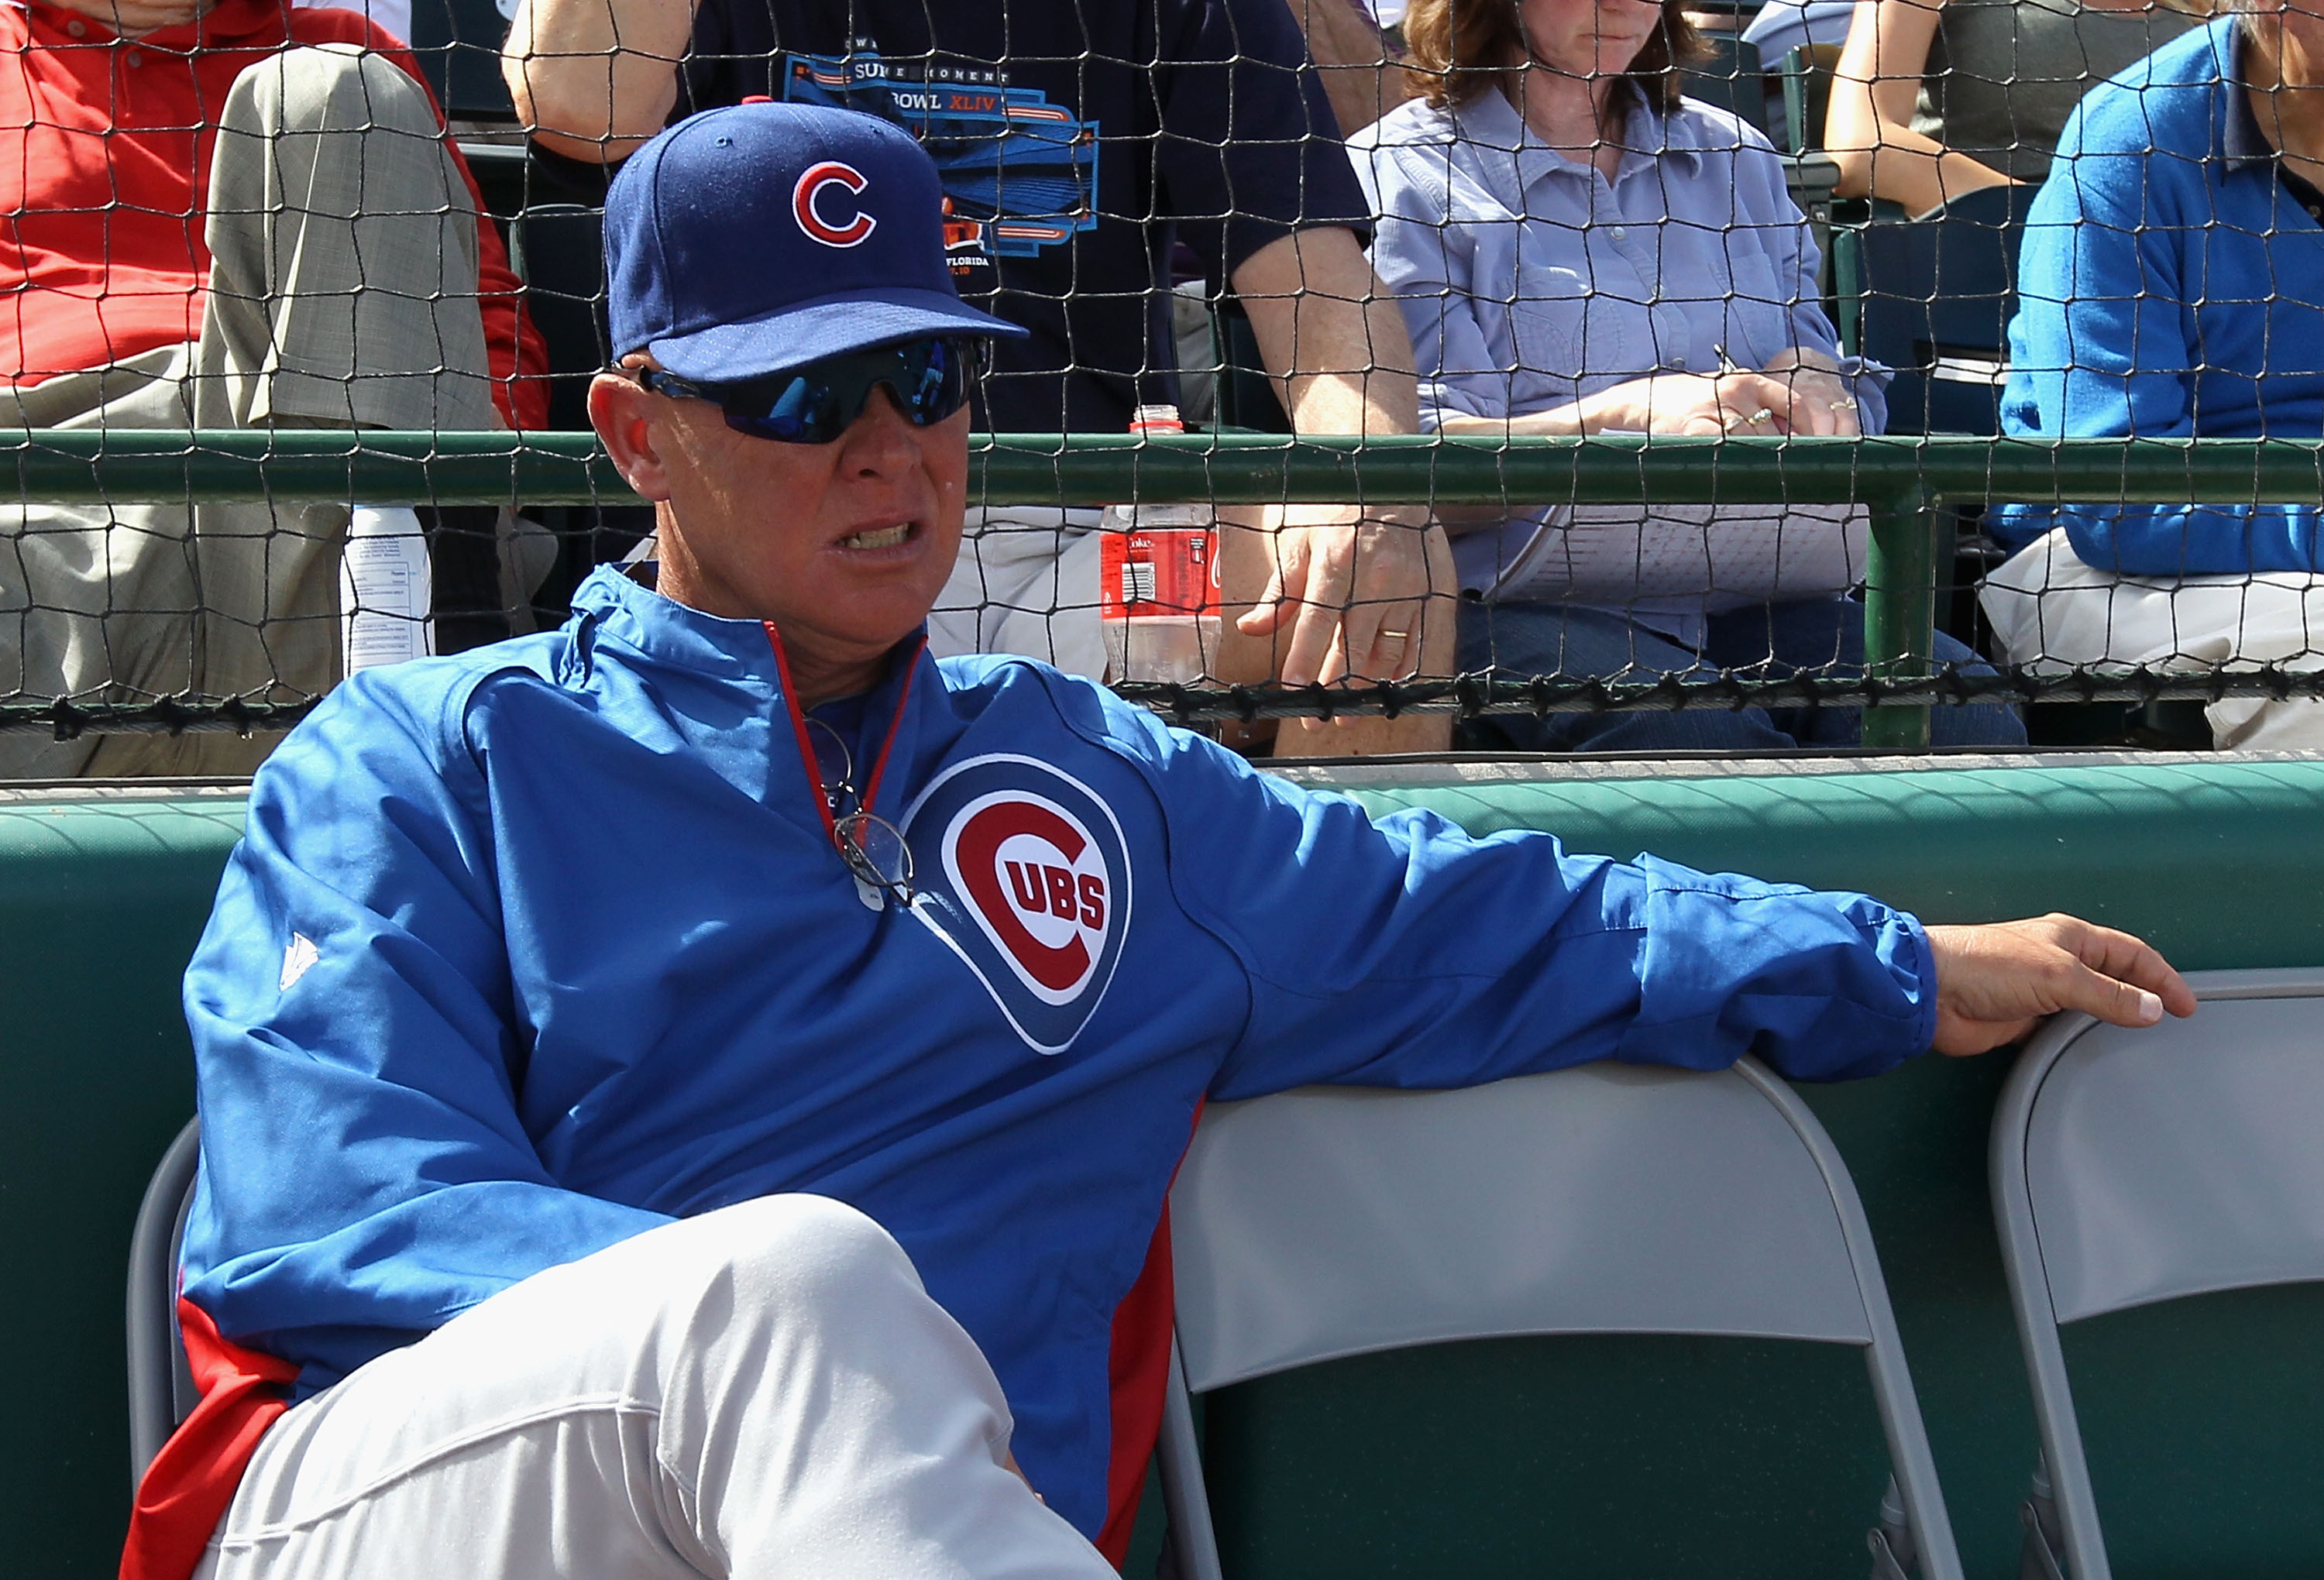 SCOTTSDALE, AZ - MARCH 01:  Manager Mike Quade of the Chicago Cubs looks on during the spring training game against the San Francisco Giants at Scottsdale Stadium on March 1, 2011 in Scottsdale, Arizona.  (Photo by Christian Petersen/Getty Images)